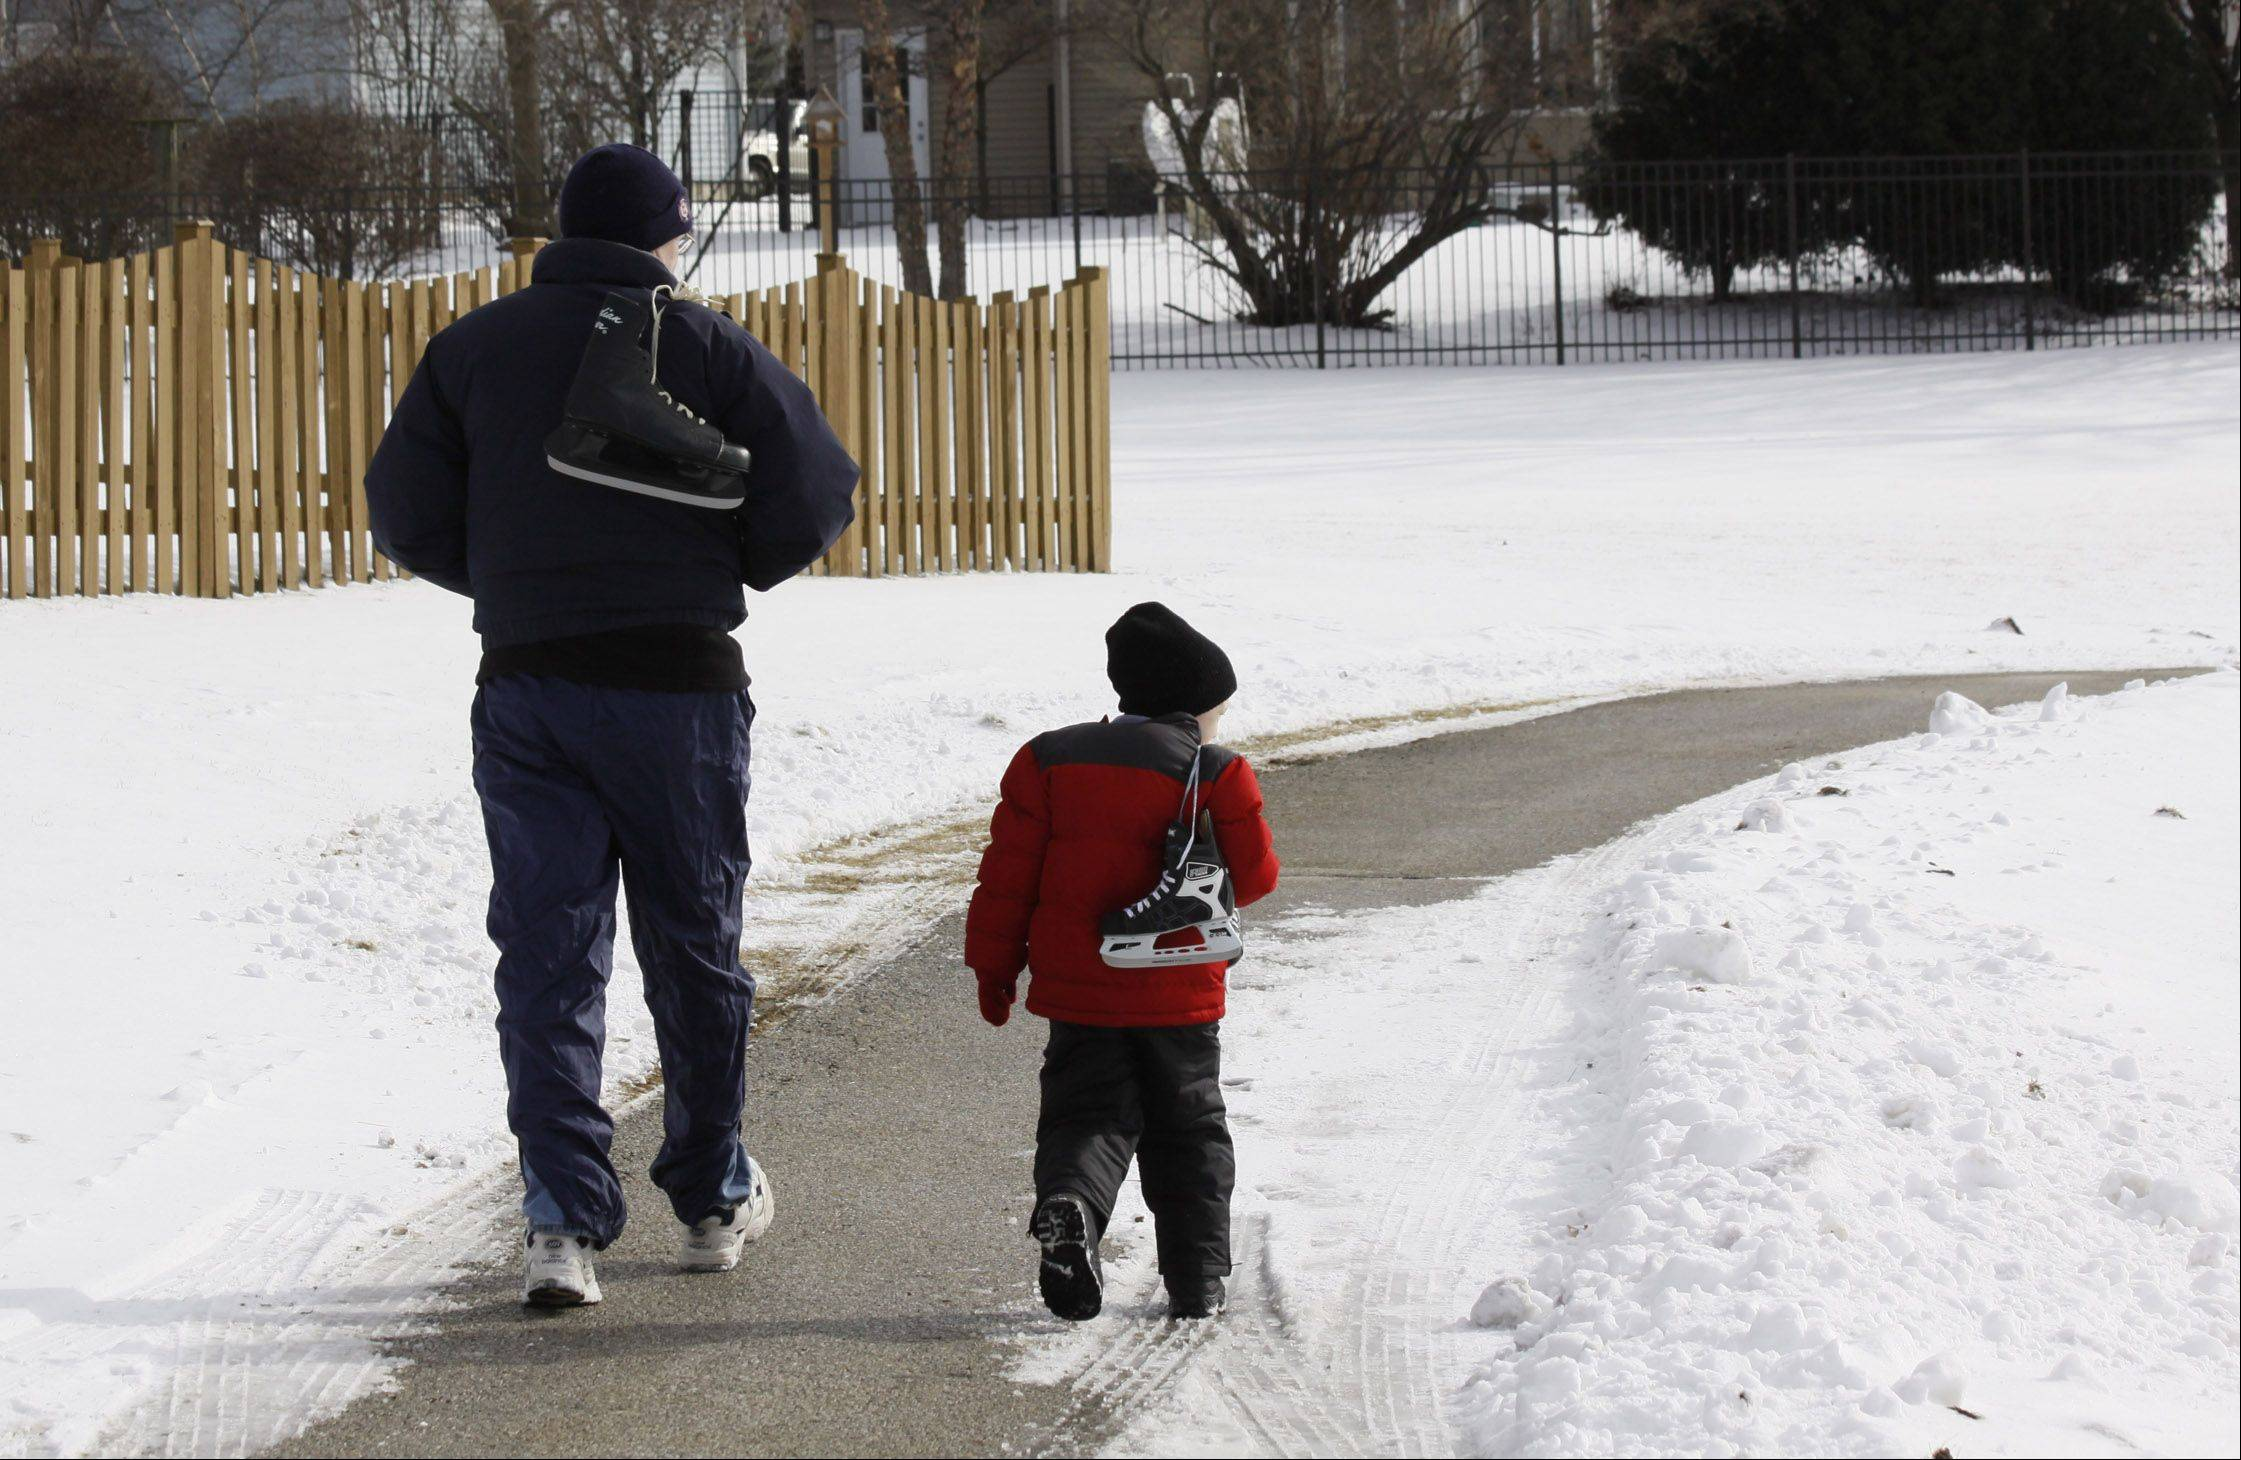 Father and son on their way to Ice skating lessons at the ice skating pond in Grayslake in 2010.